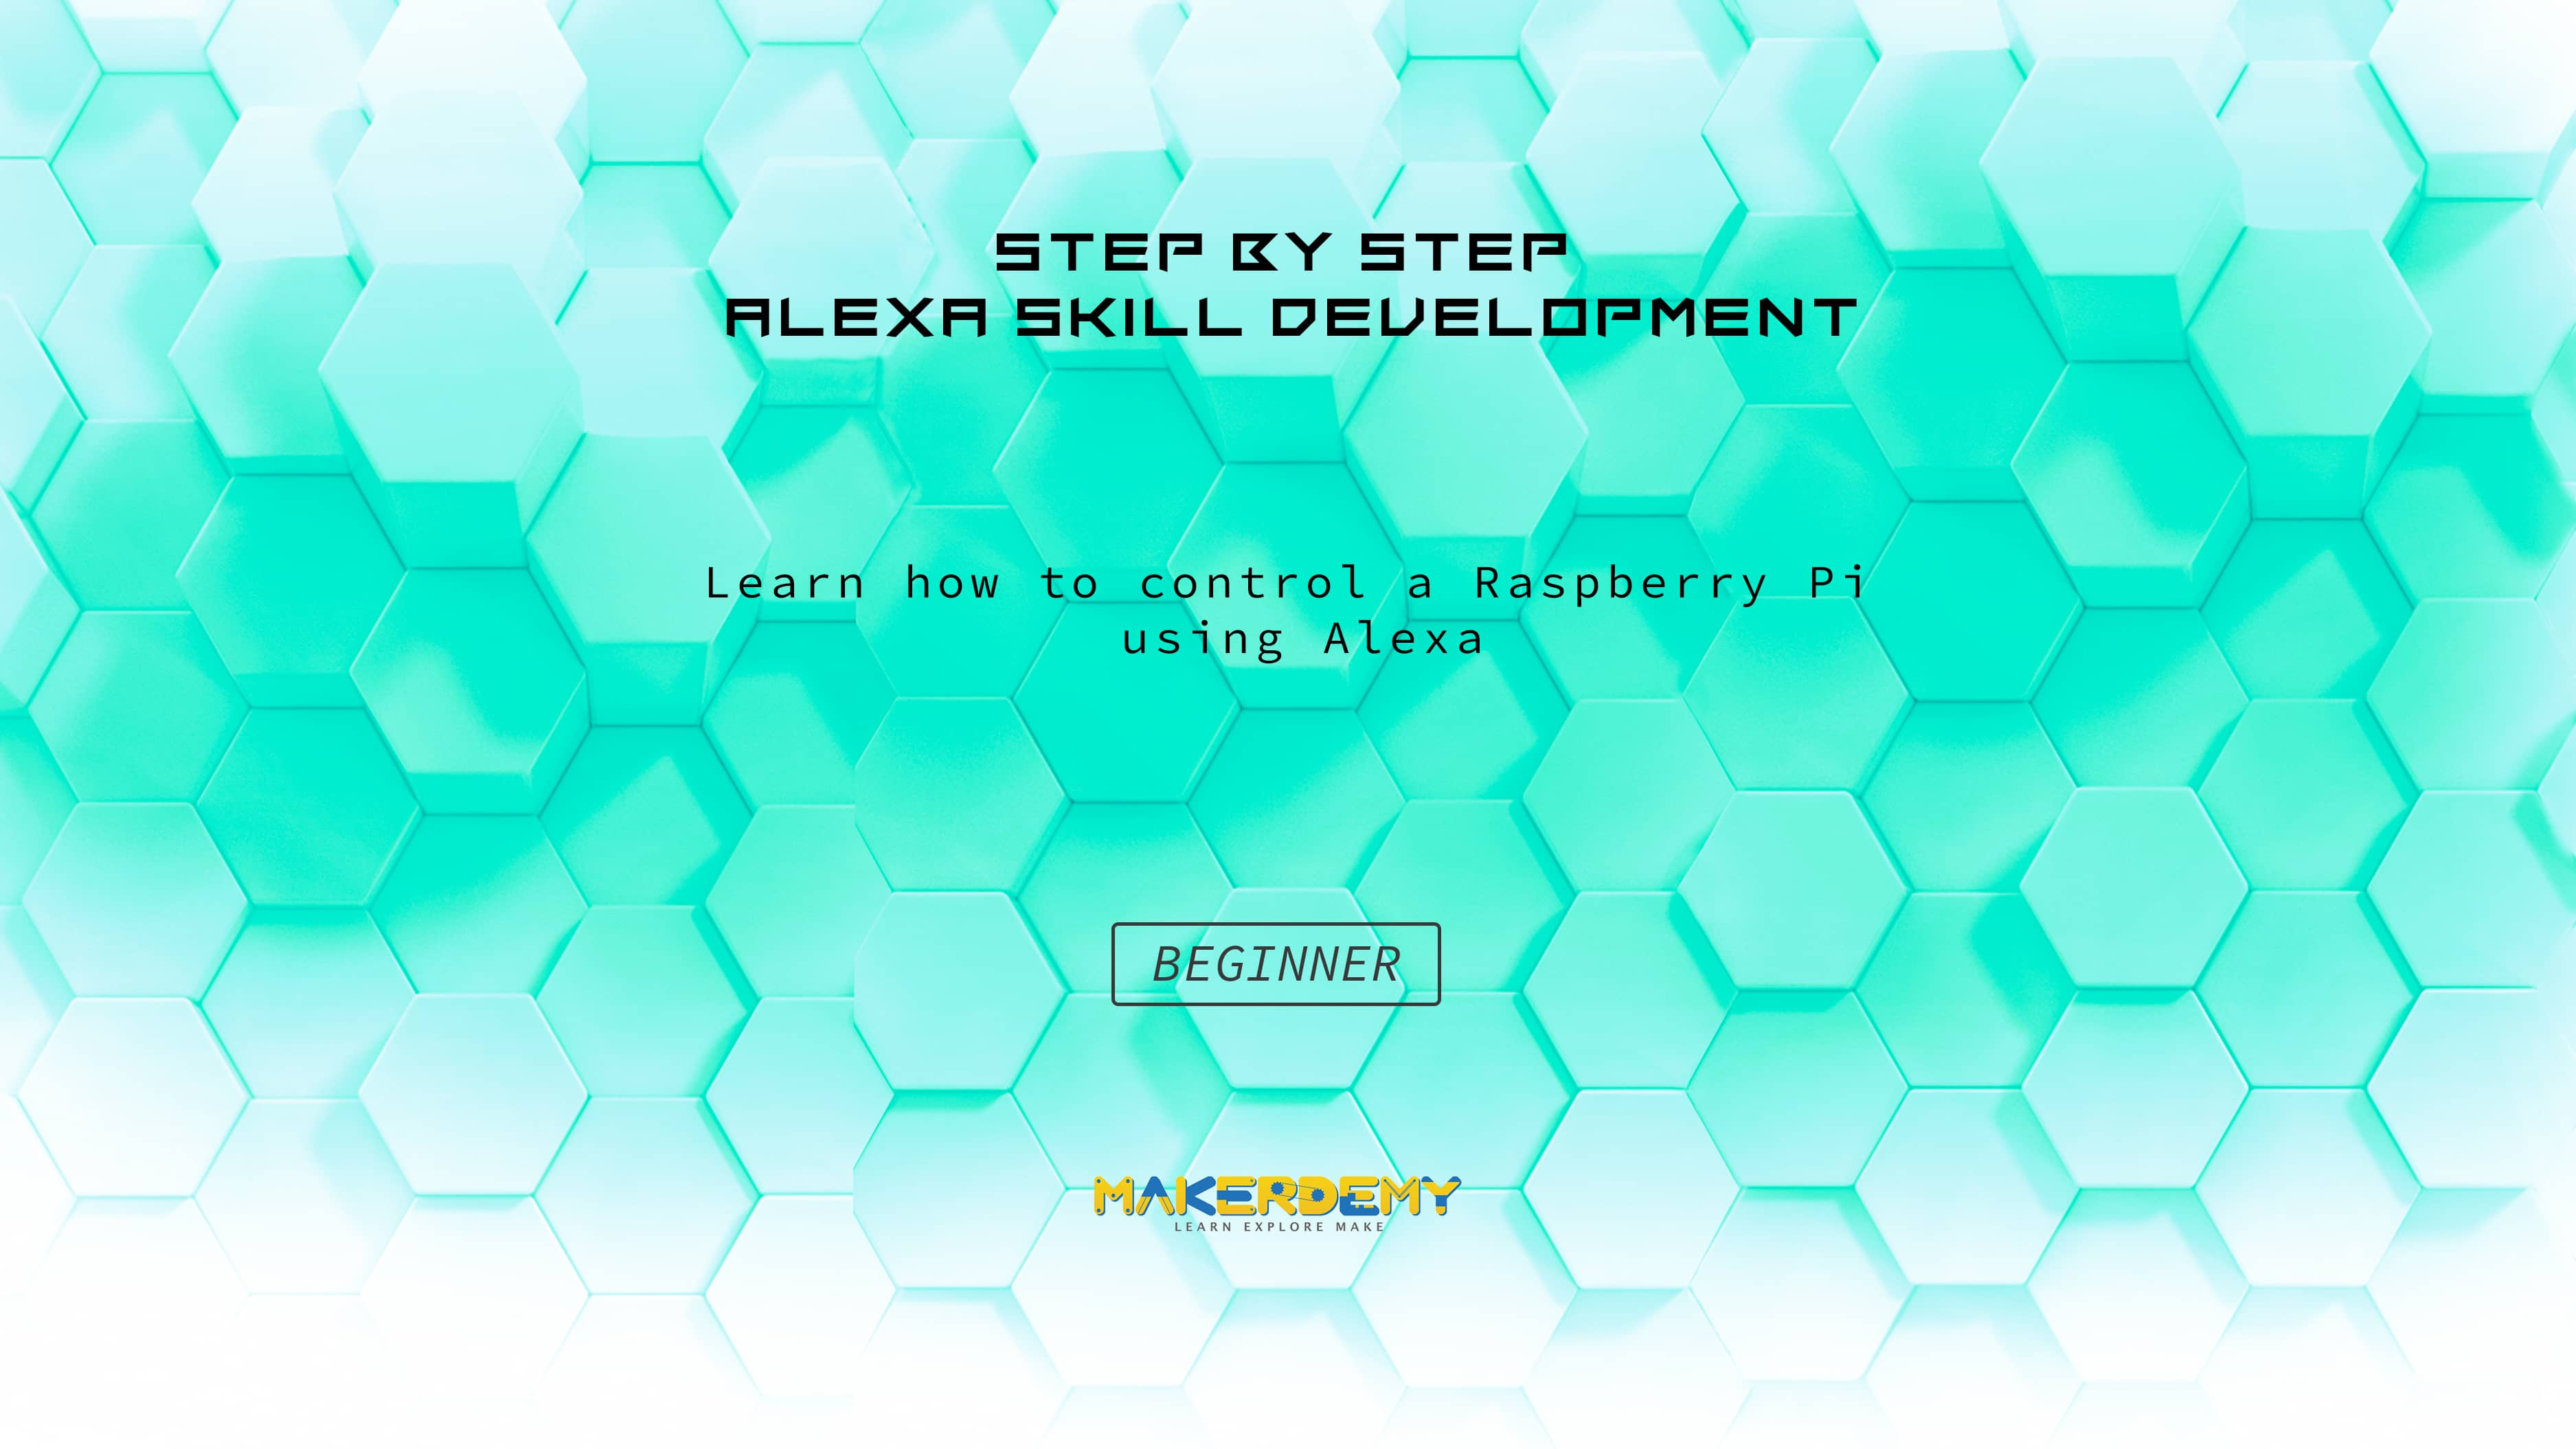 Step by Step Alexa Skill Development